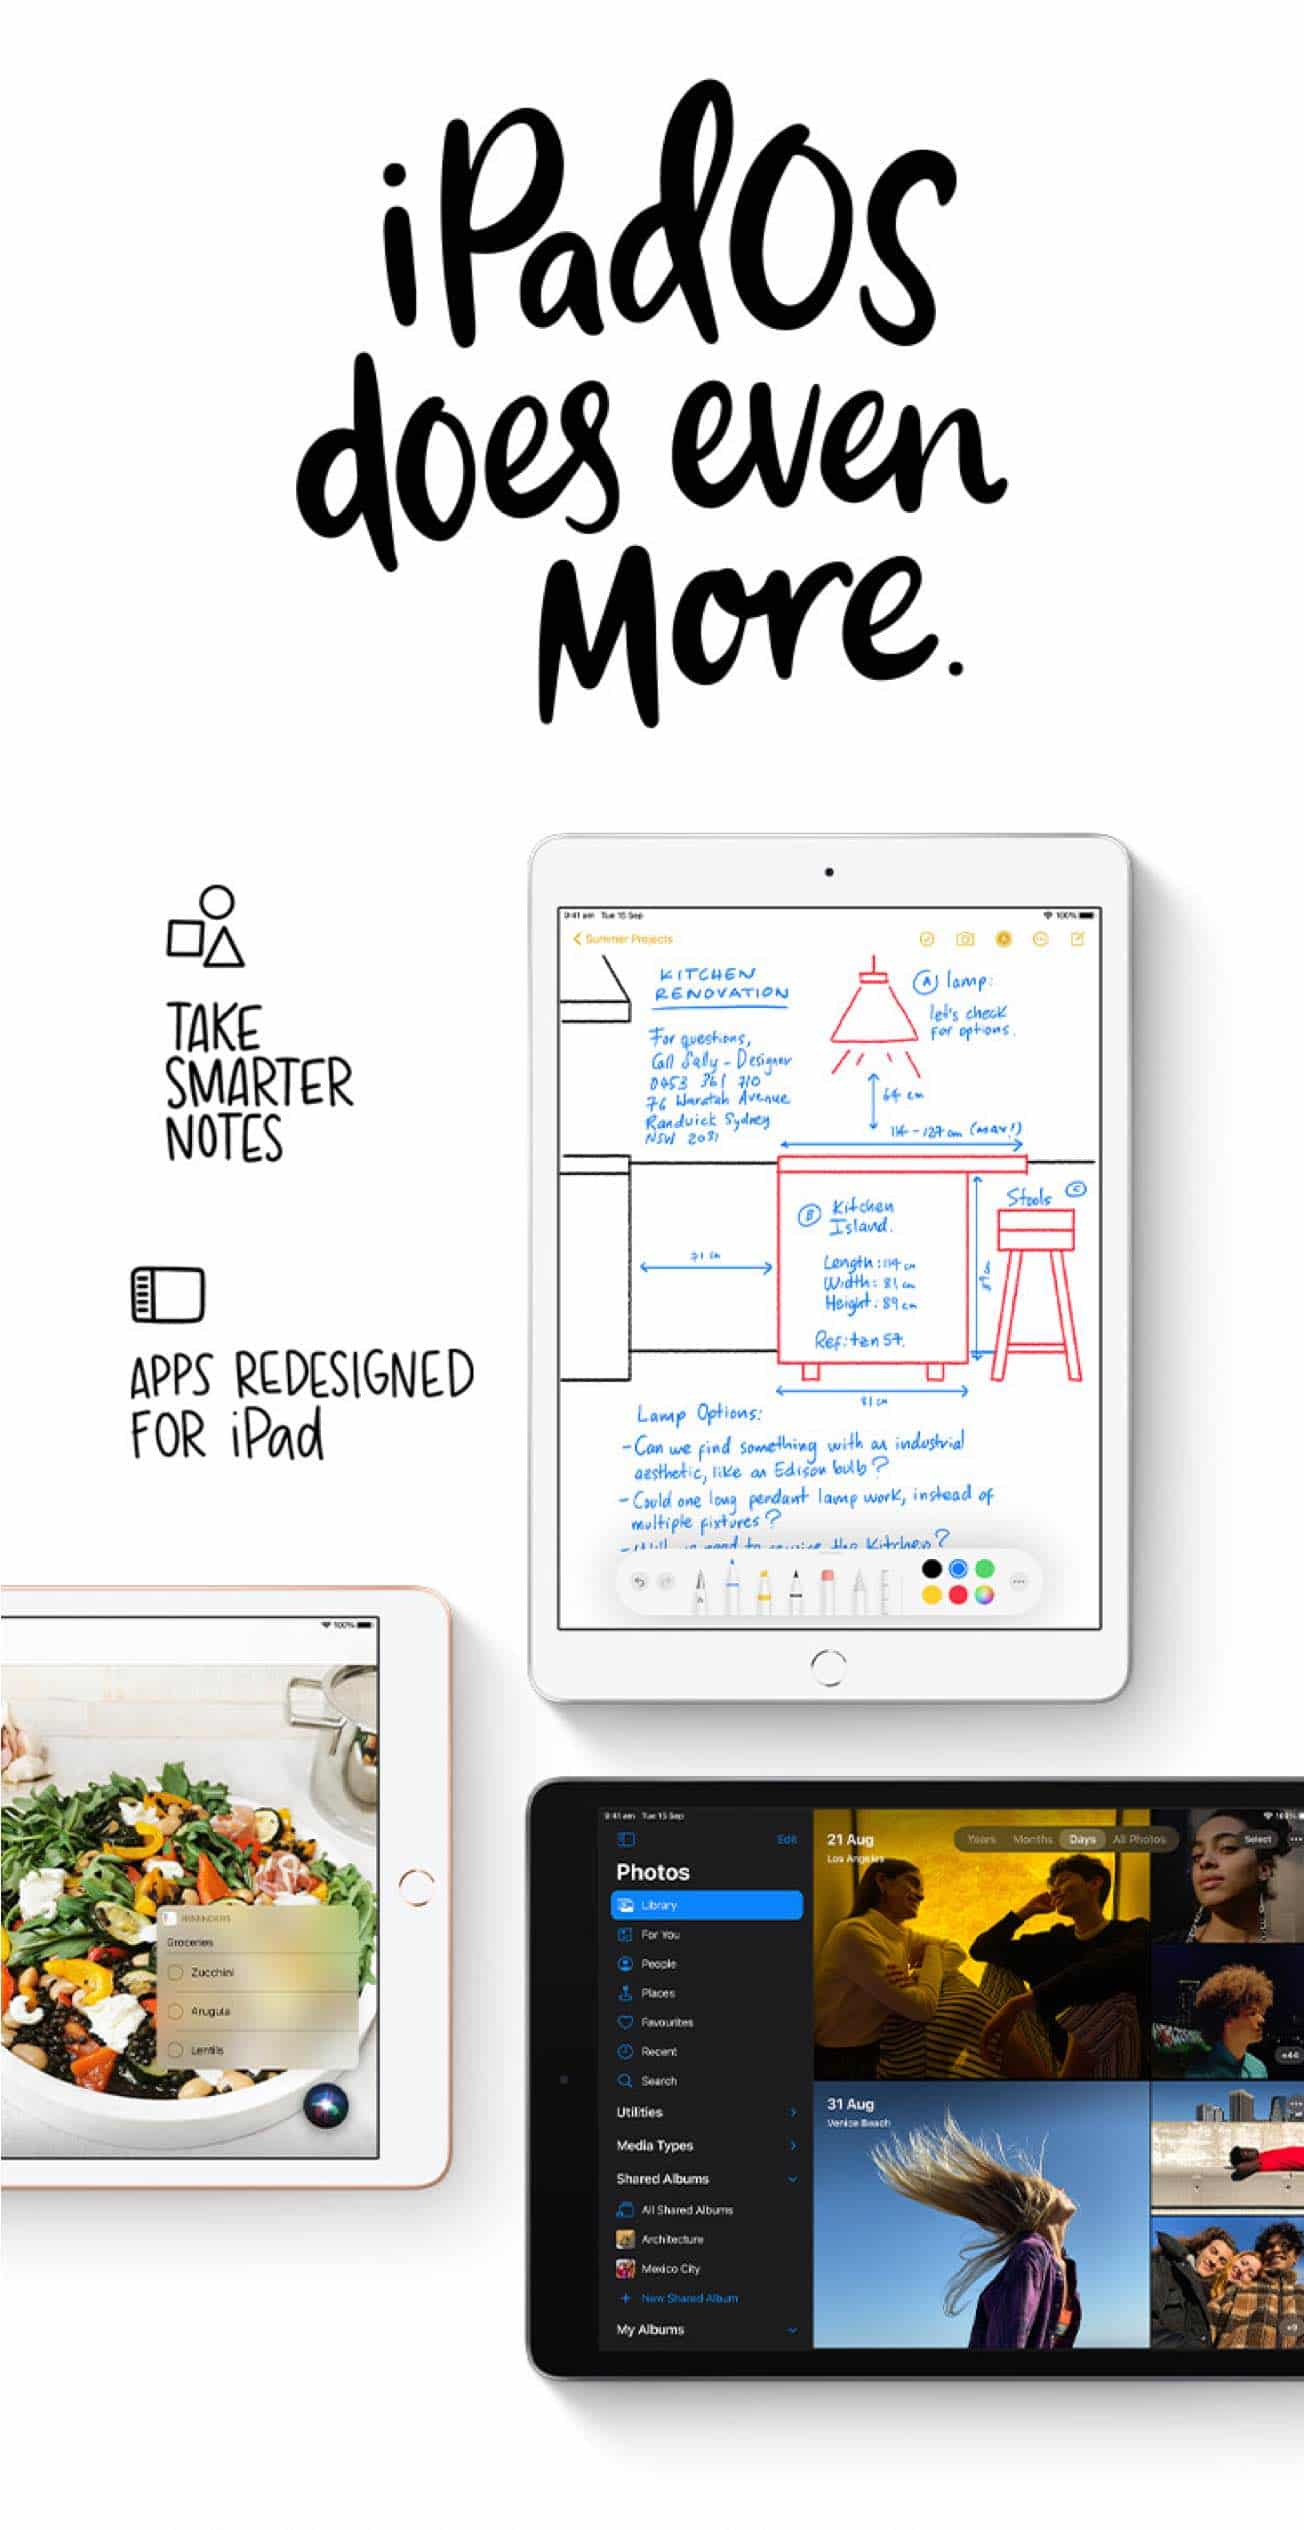 Take smarter notes and with apps redesigned for iPad